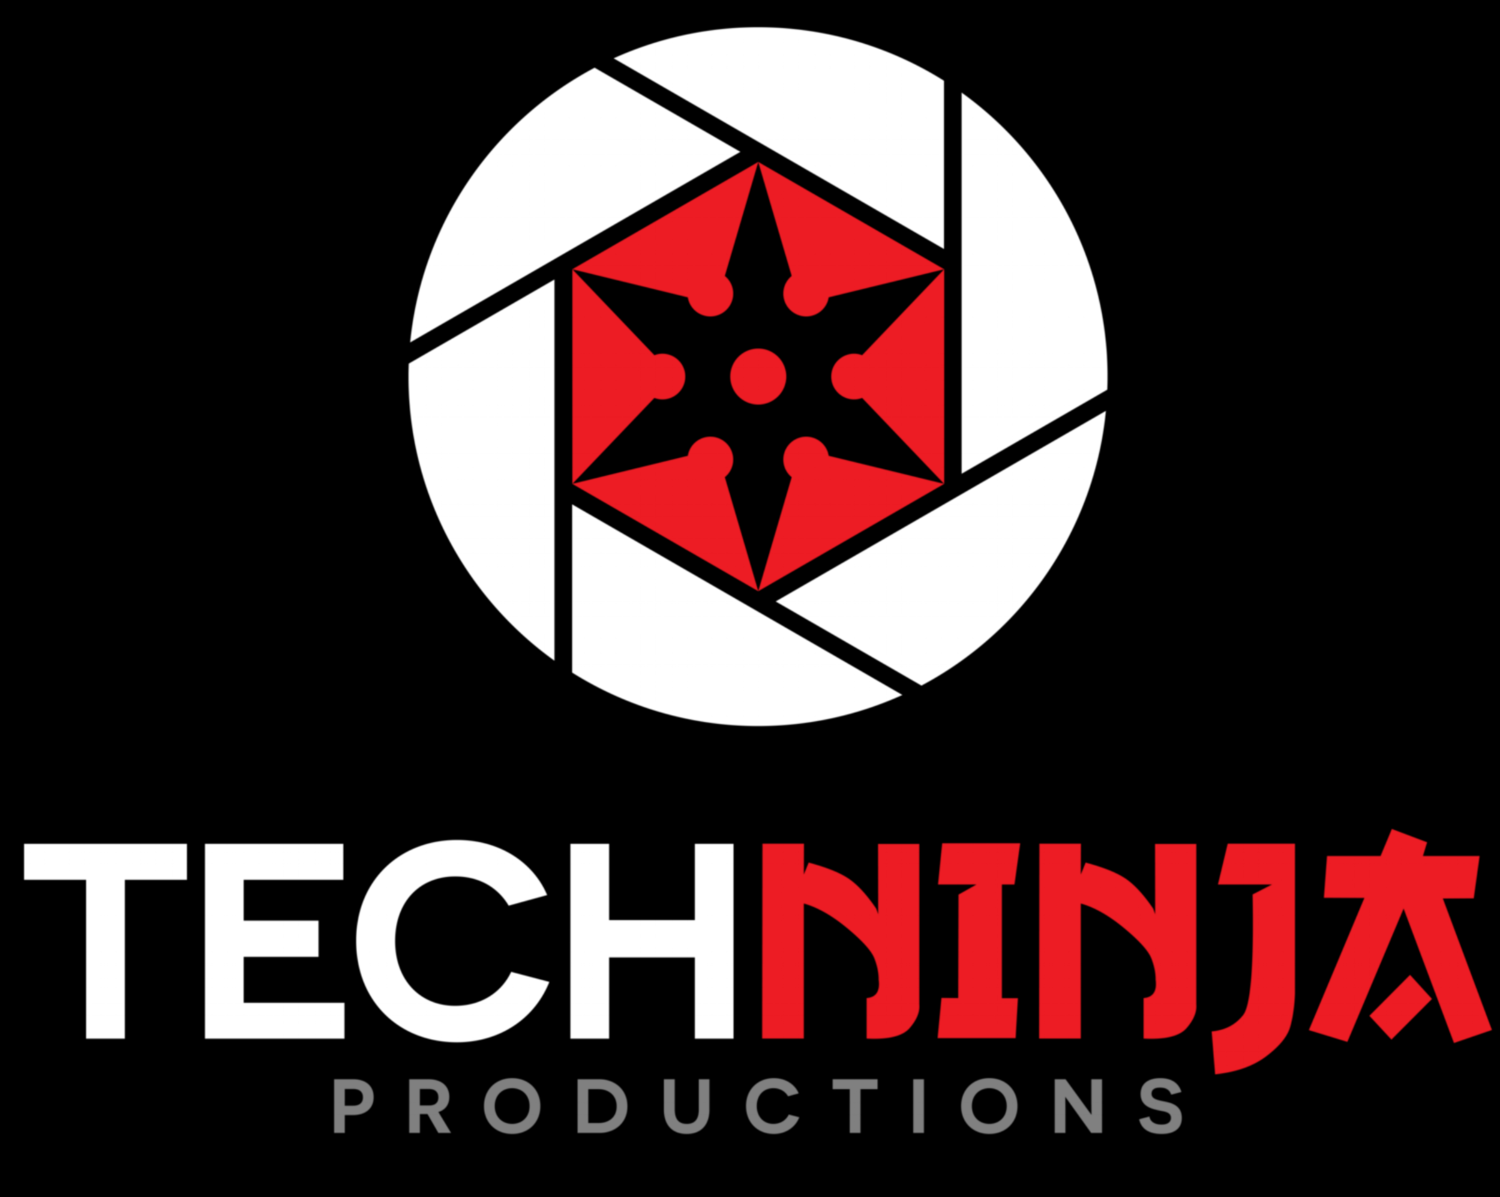 Tech Ninja Productions